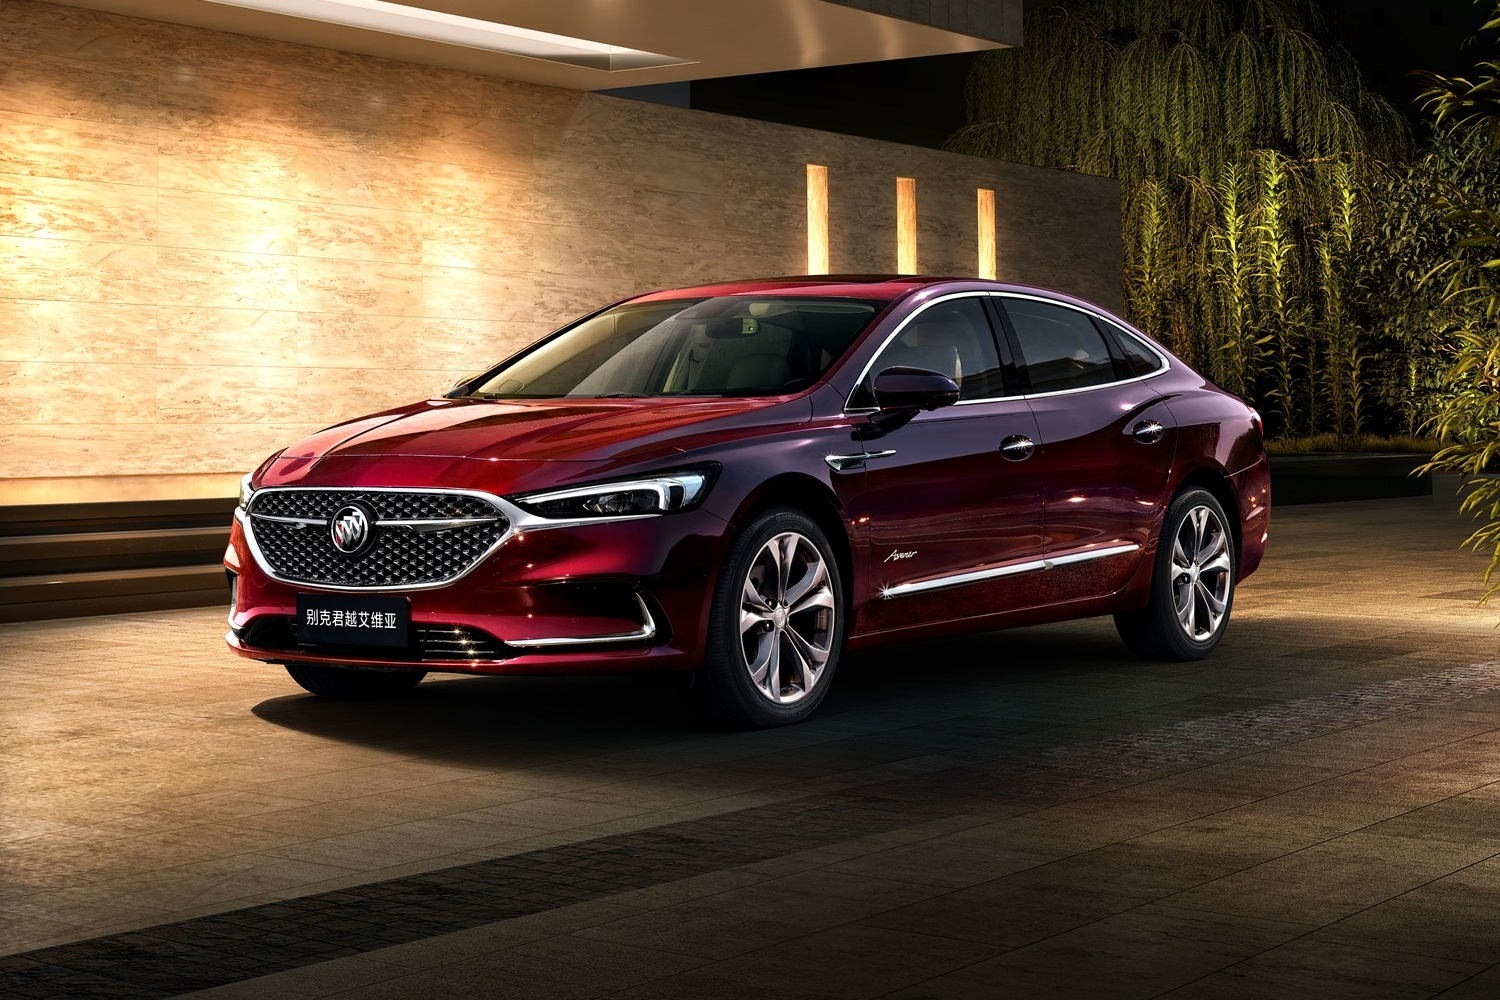 2021 Buick Lacrosse Gets More Refined Than Ever | Gm Authority 2021 Buick Cascada Oil Type, Options, Reviews